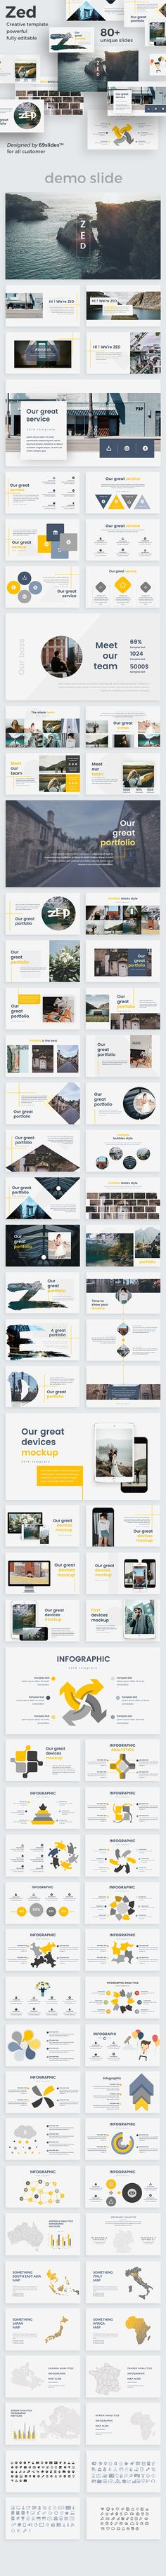 Zed Creative #Powerpoint Template - Creative PowerPoint Templates